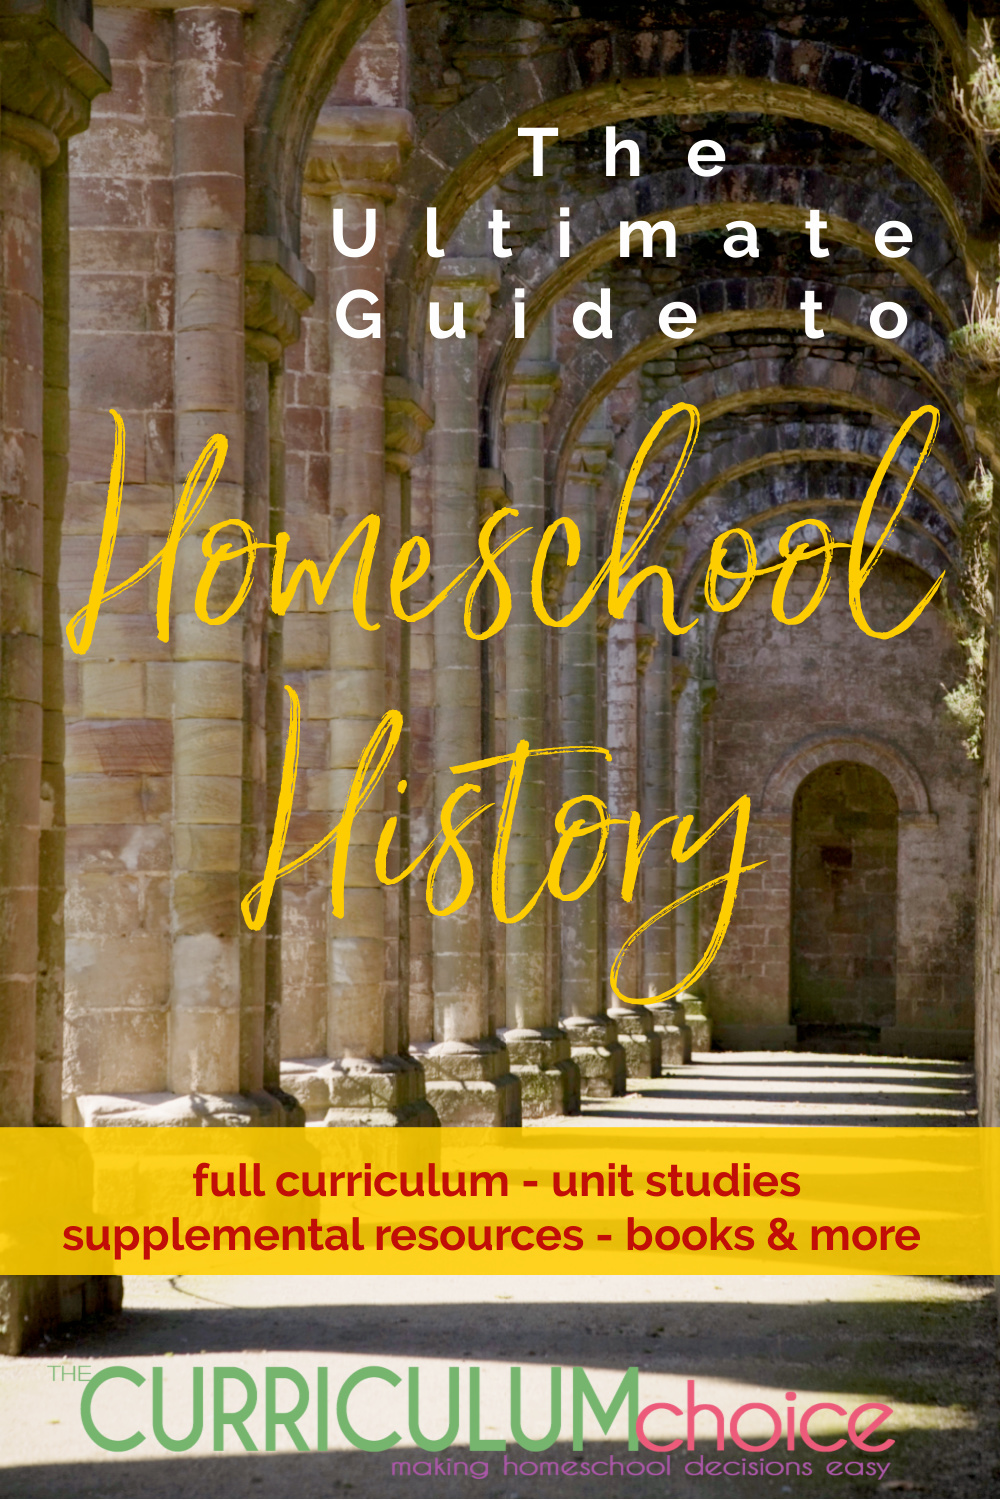 The Ultimate Guide to History Curriculum for Homeschool is a collection of both World and US History curriculum and resources for your homeschool. From The Curriculum Choice.